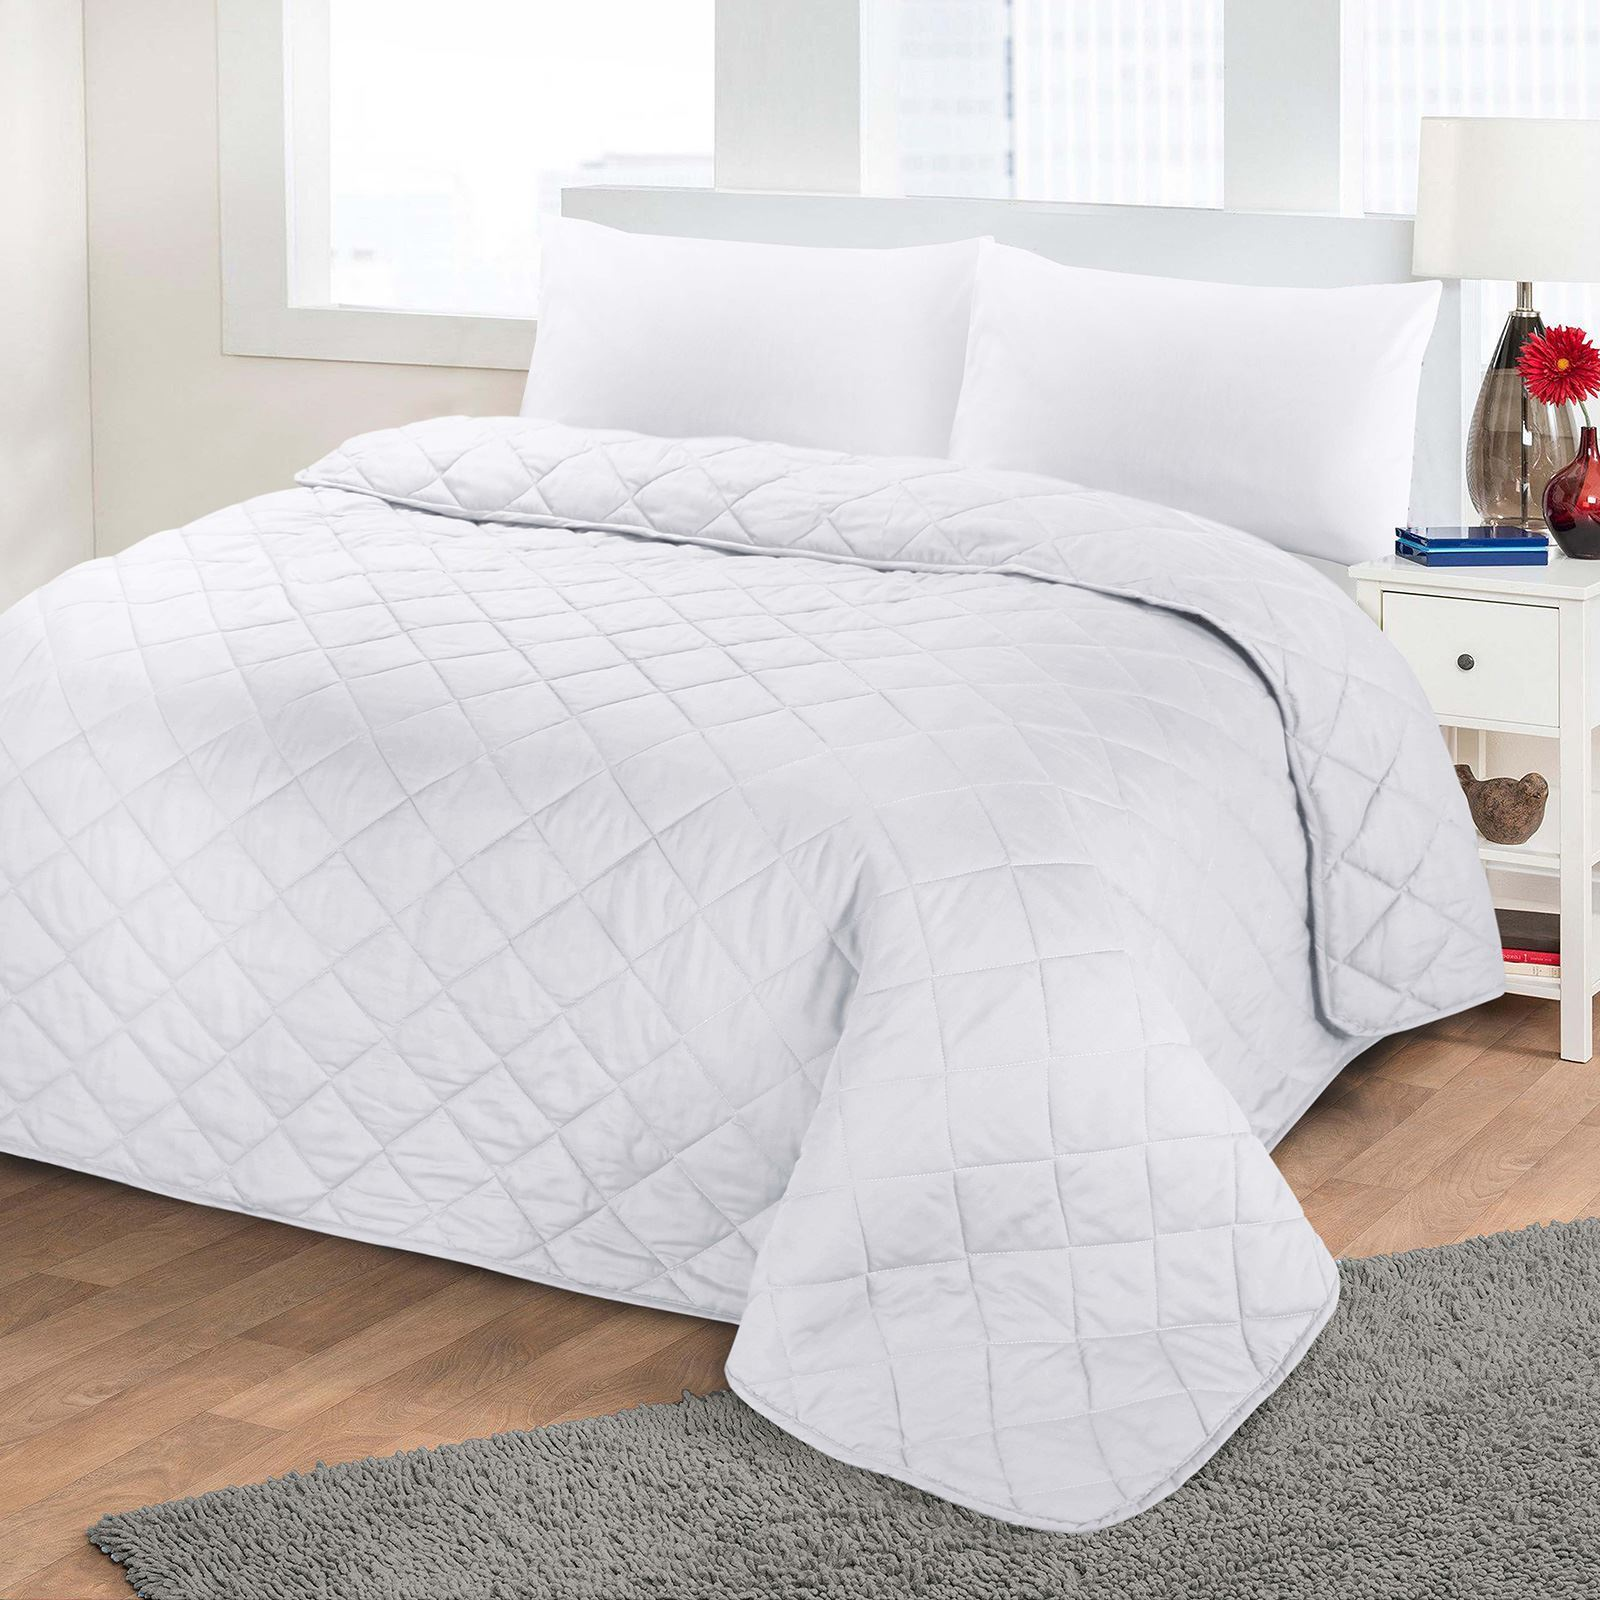 Plain White Bedding Luxury Soft Plain Dyed Polycotton Quilted Bedspread Bed